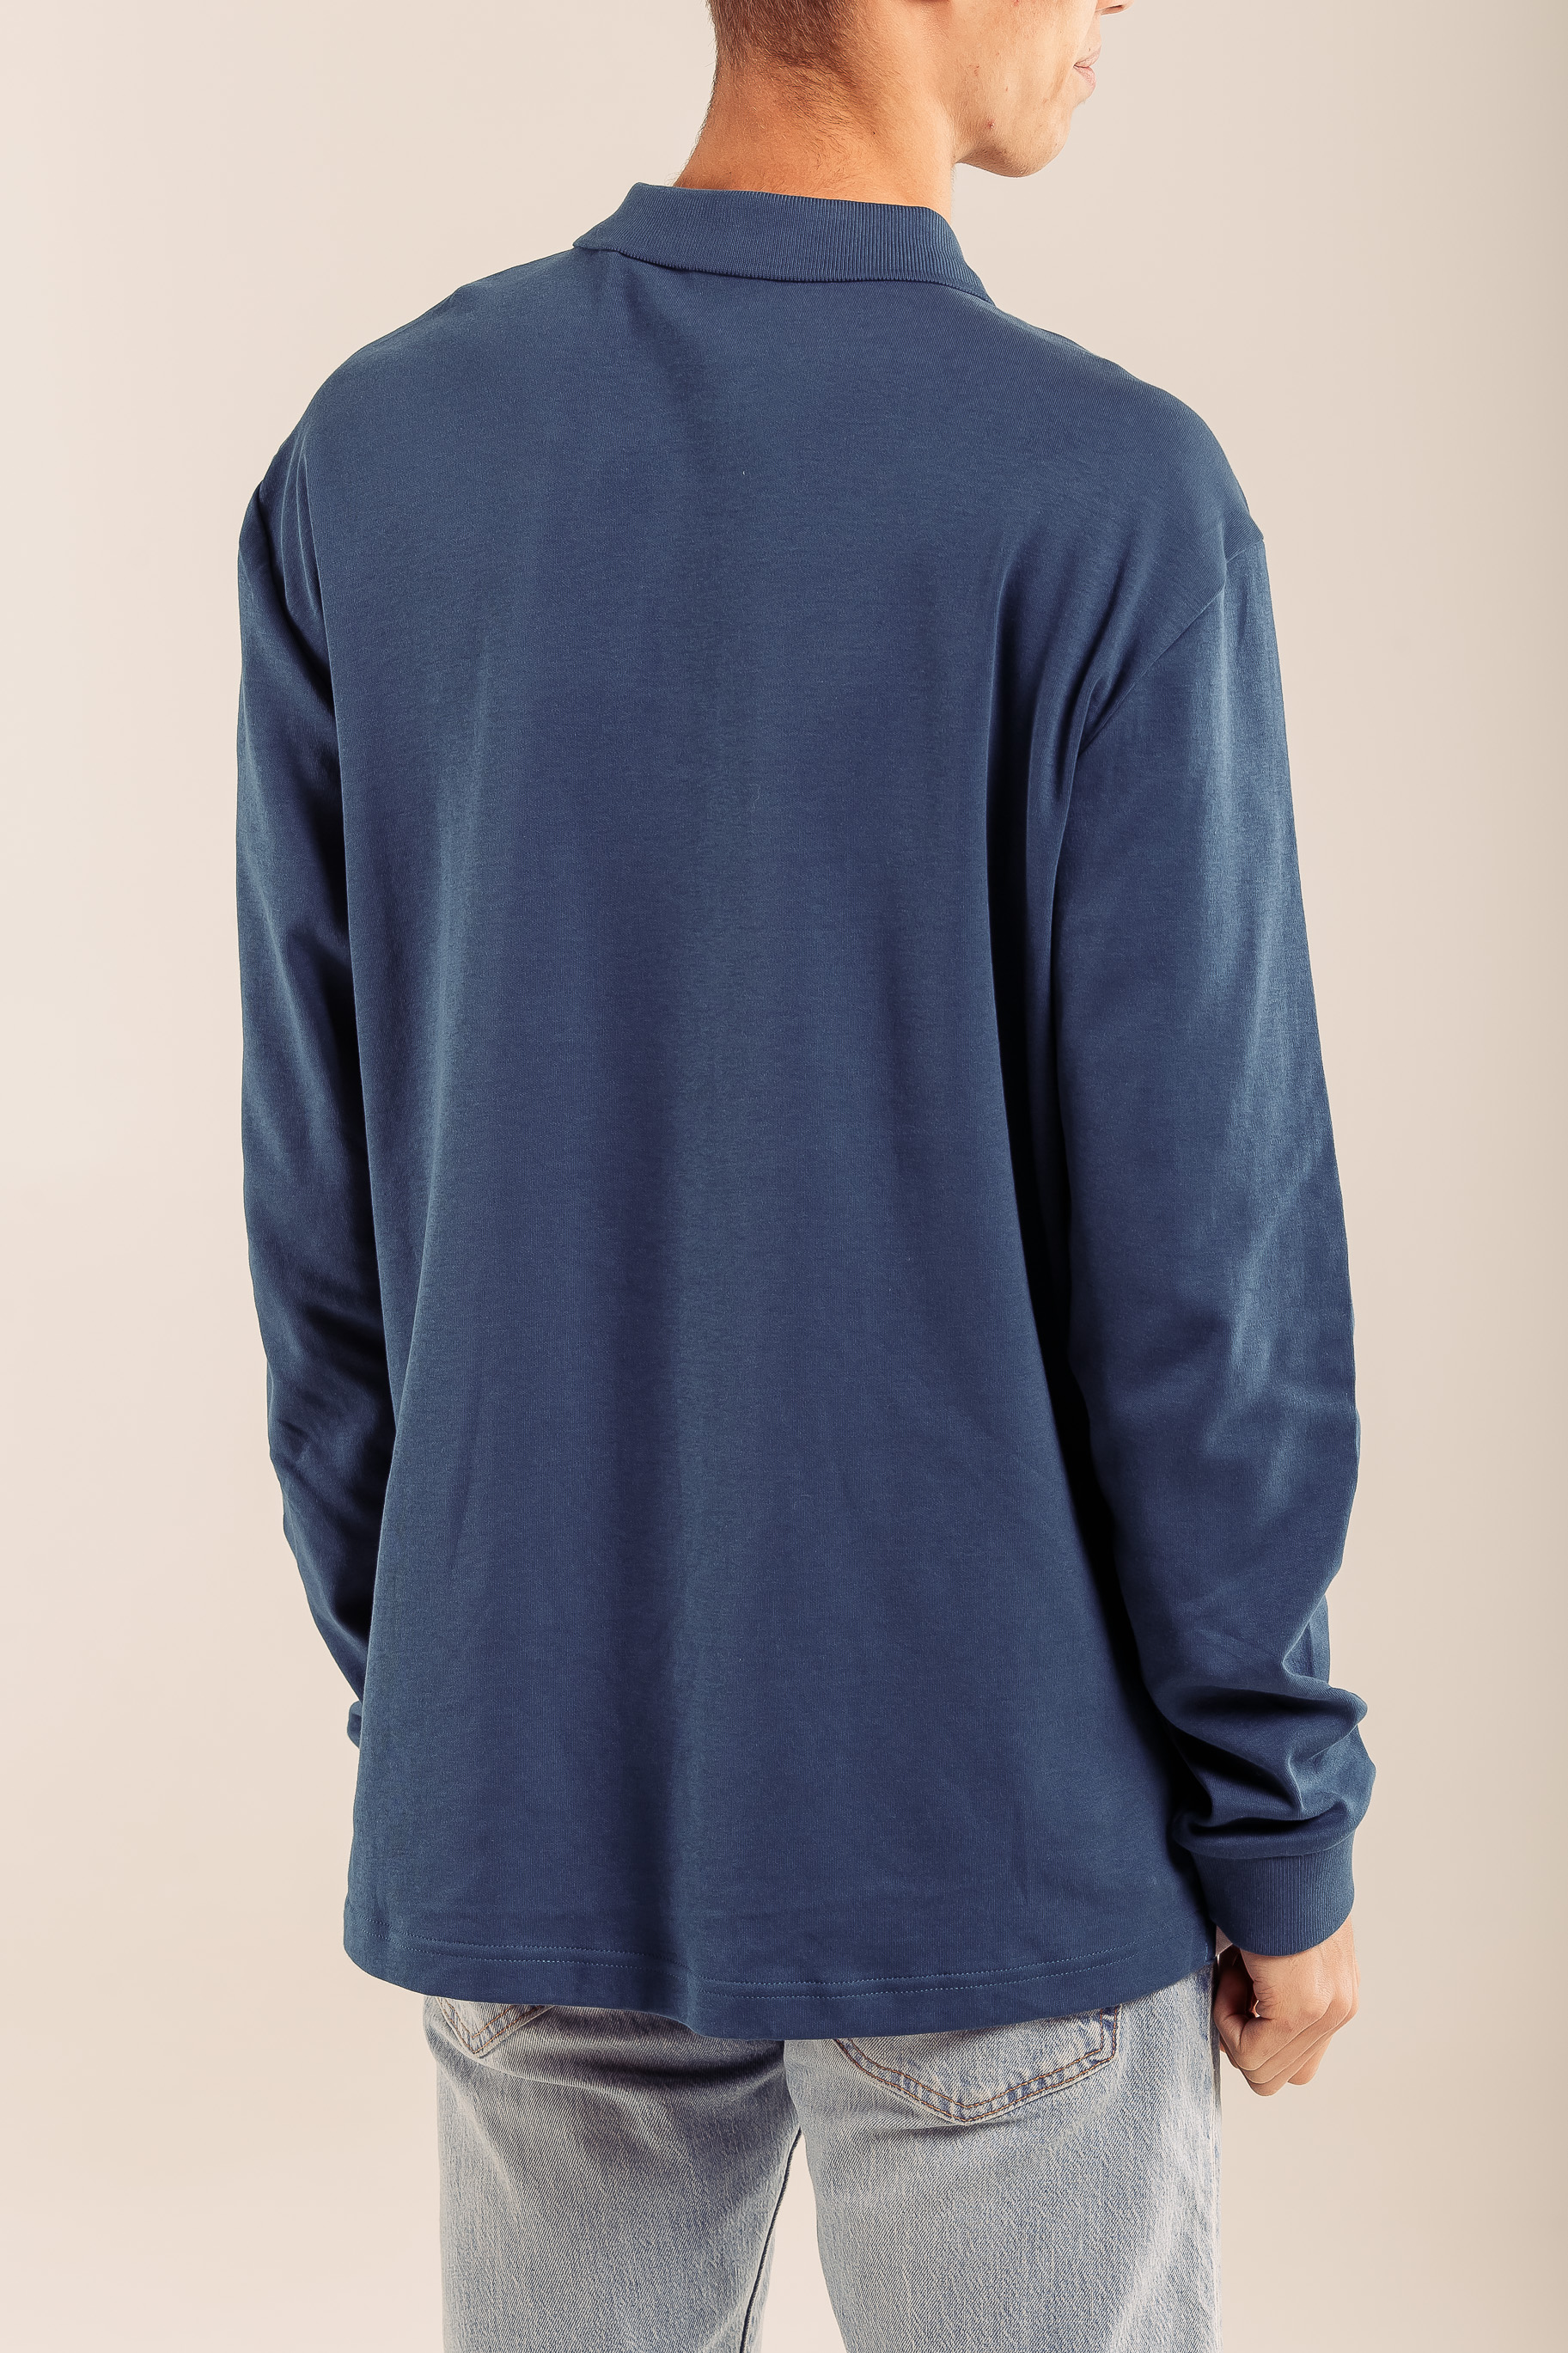 Tricou ONLY & Sons Casual (4378) photo 0